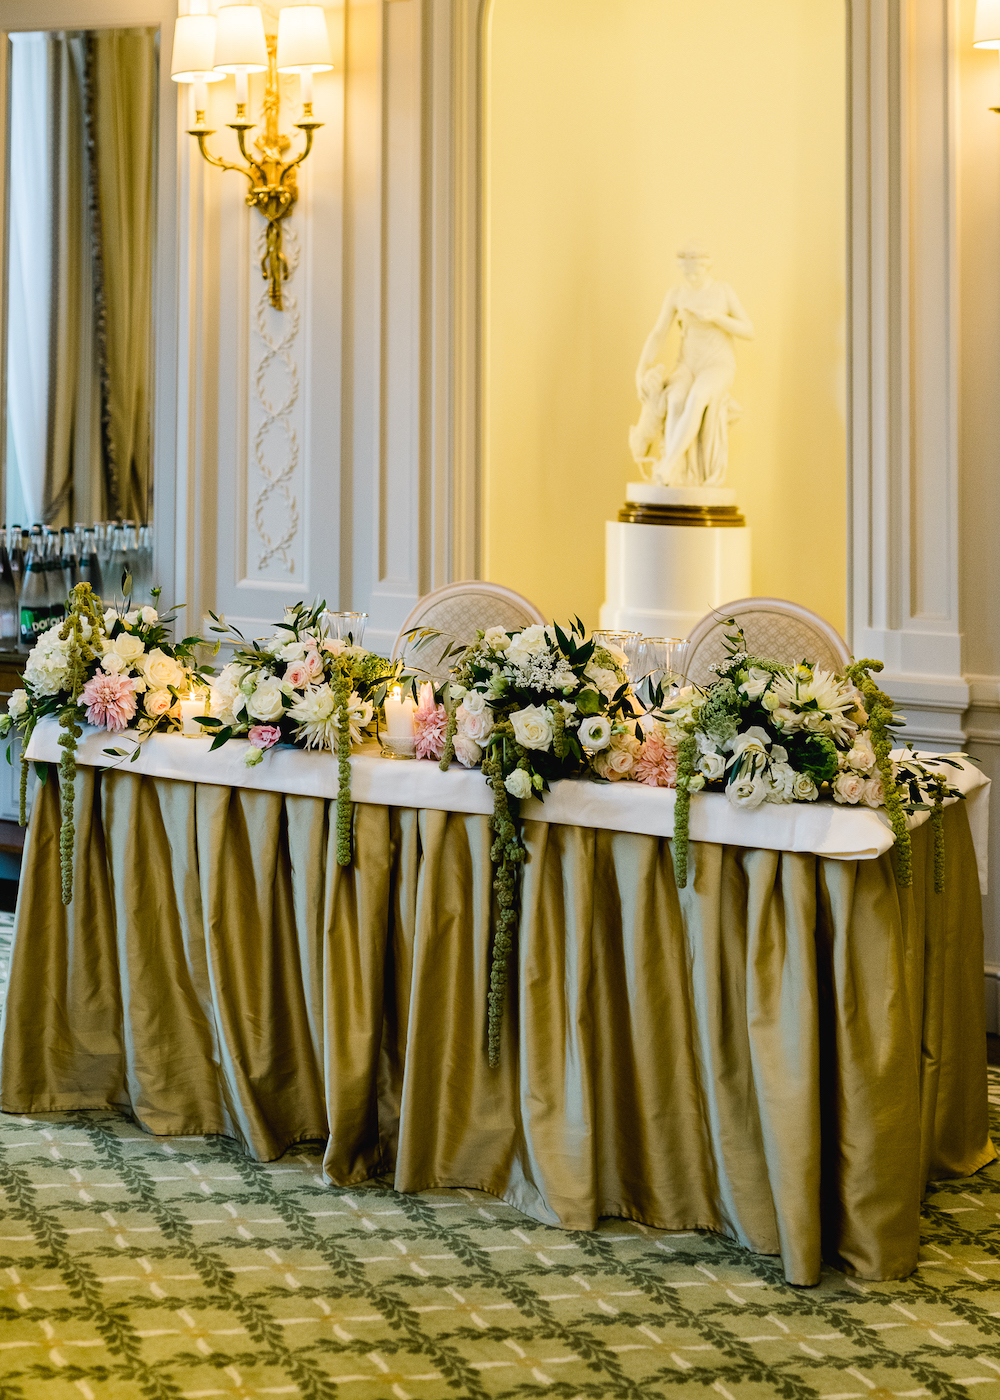 Paris wedding sweetheart table decoration